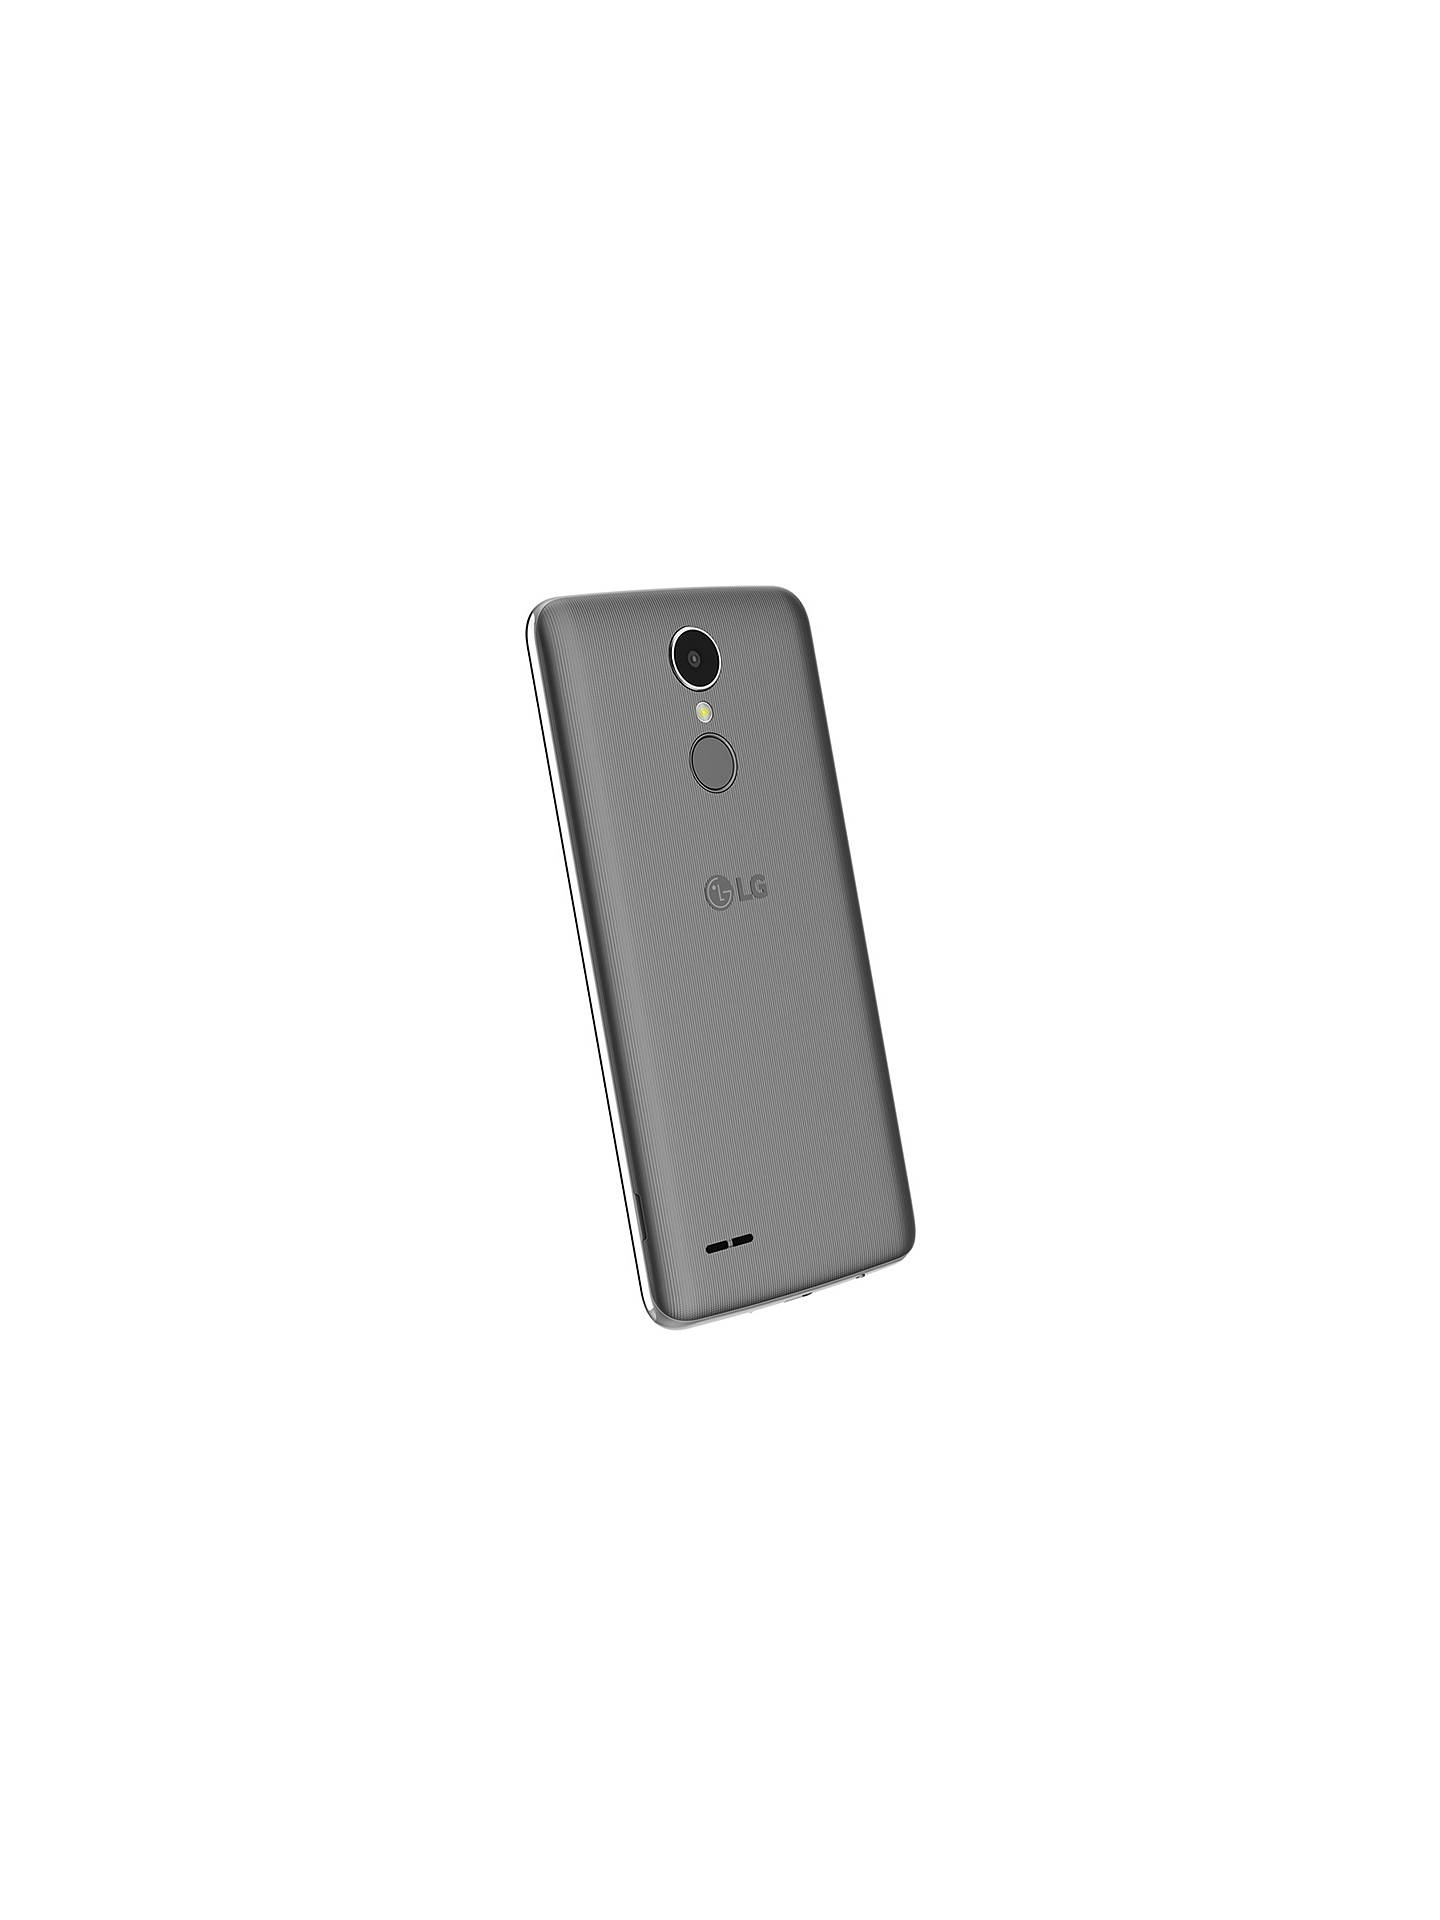 LG K8 Smartphone, Android, 5